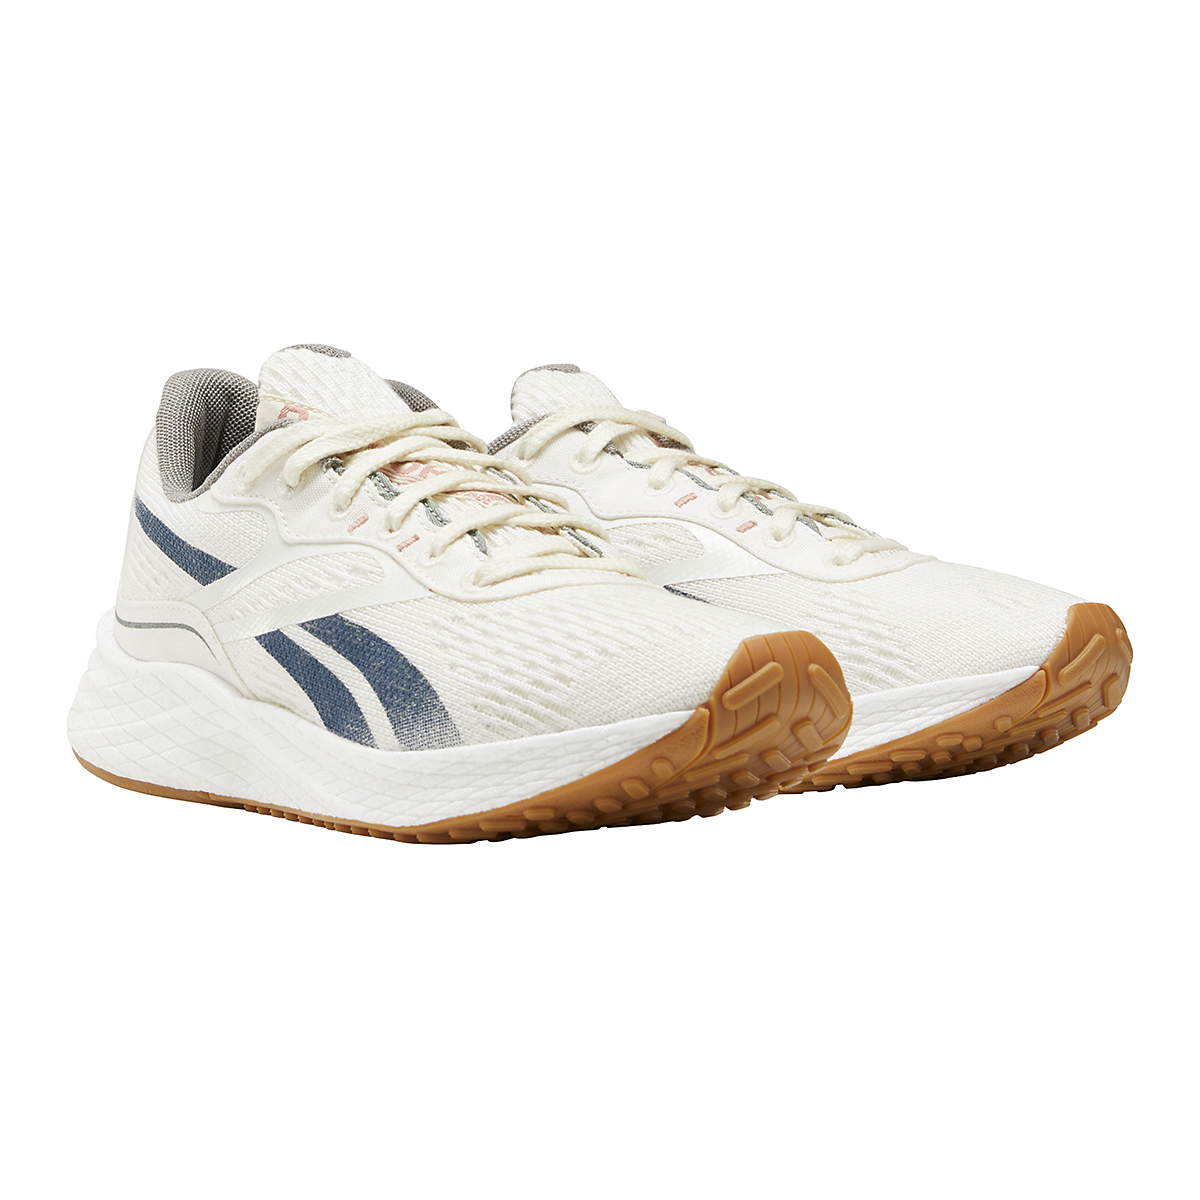 Women's Reebok Floatride Energy Grow Running Shoe - Color: Classic White/Brave Blue/Boulder Grey - Size: 5 - Width: Regular, Classic White/Brave Blue/Boulder Grey, large, image 3